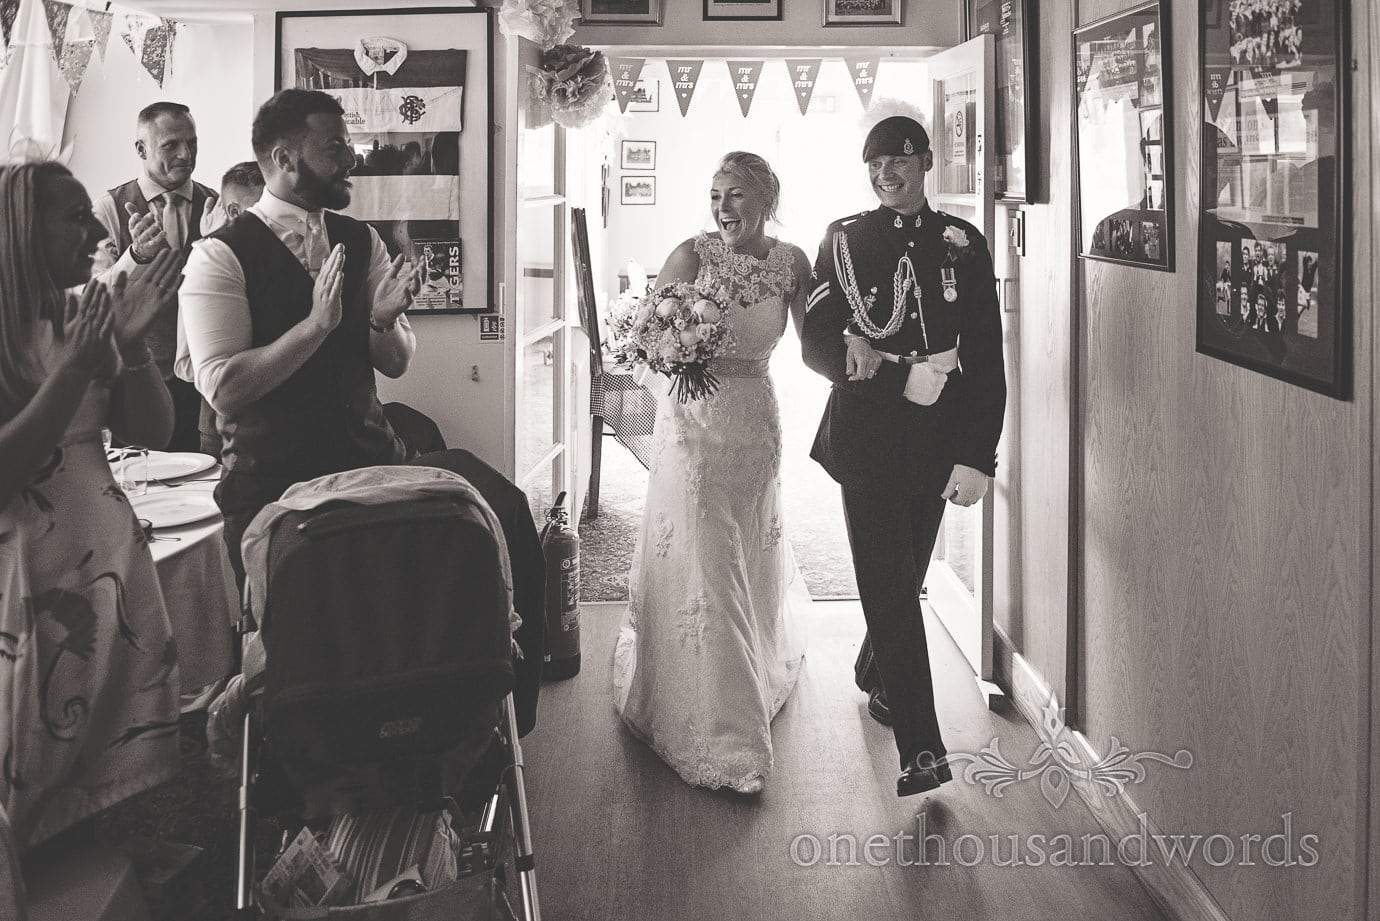 Bride and groom in military uniform enter wedding breakfast to applause